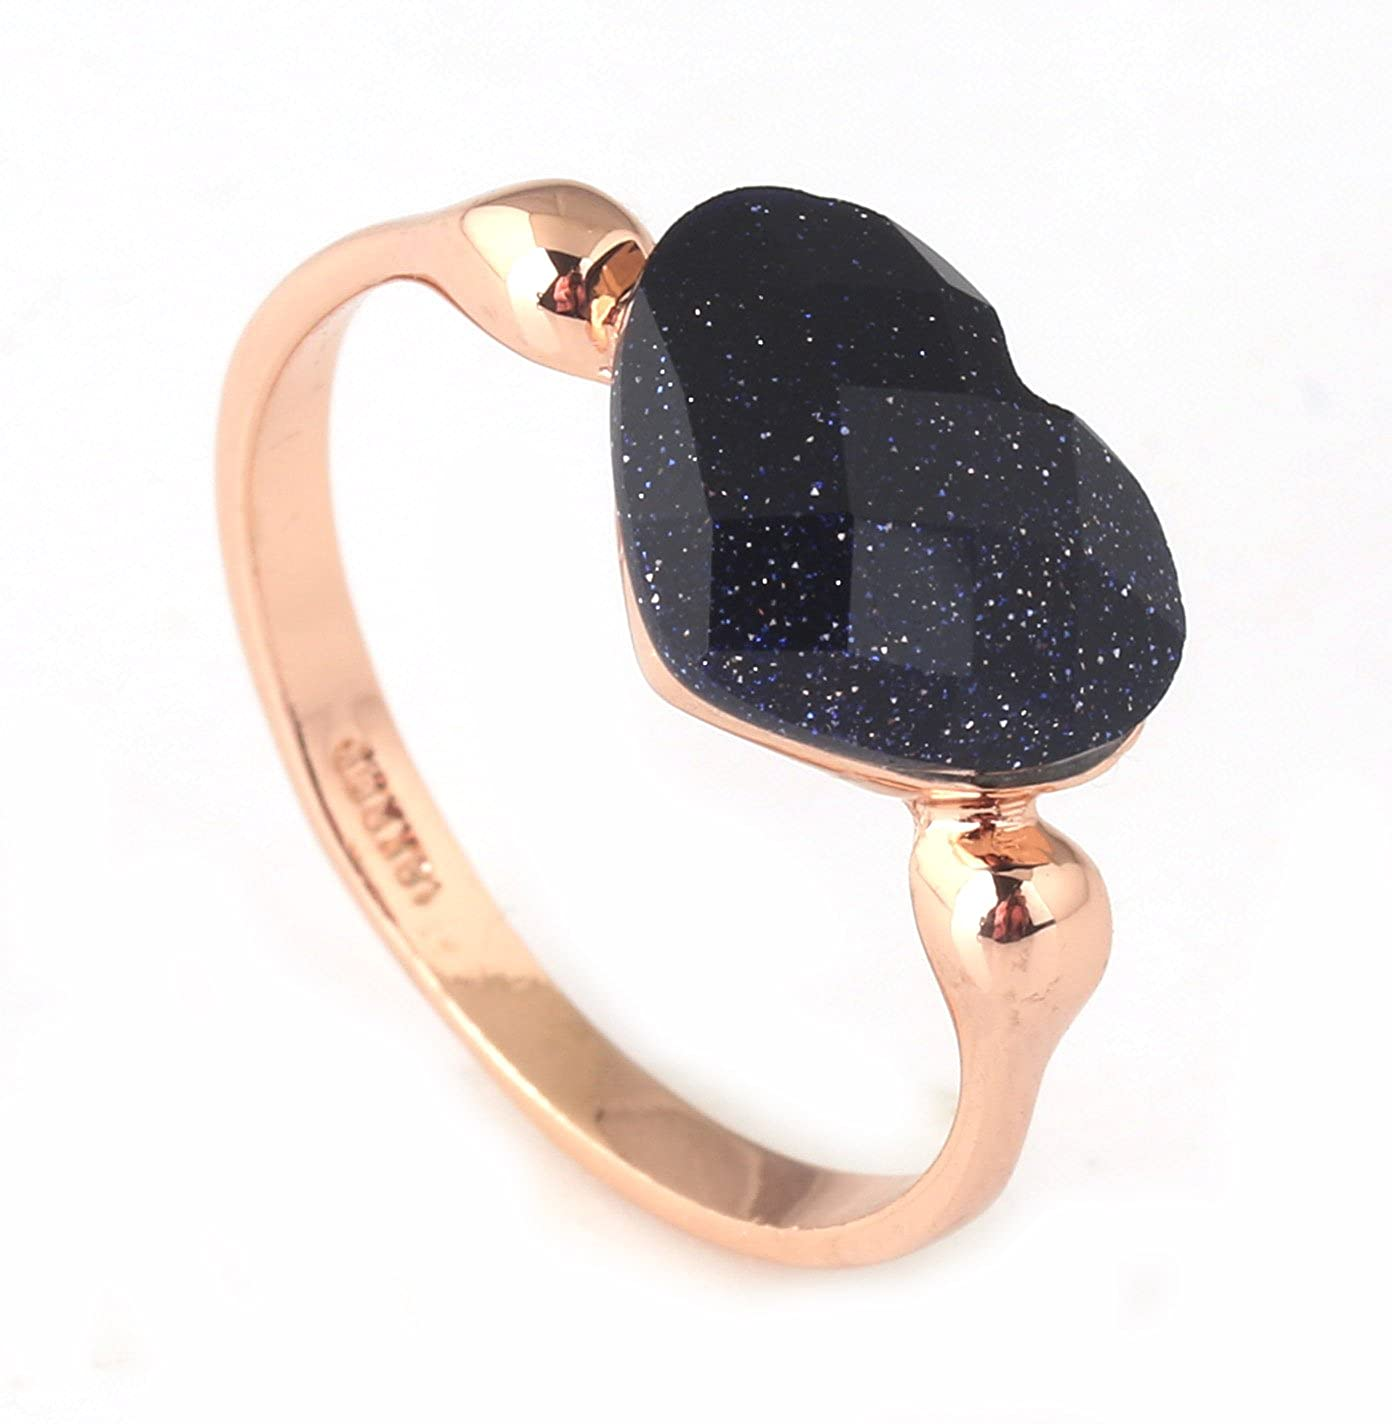 Acefeel Black Heart Rhinestone Champagne Gold Ring Valentine's Day Gift